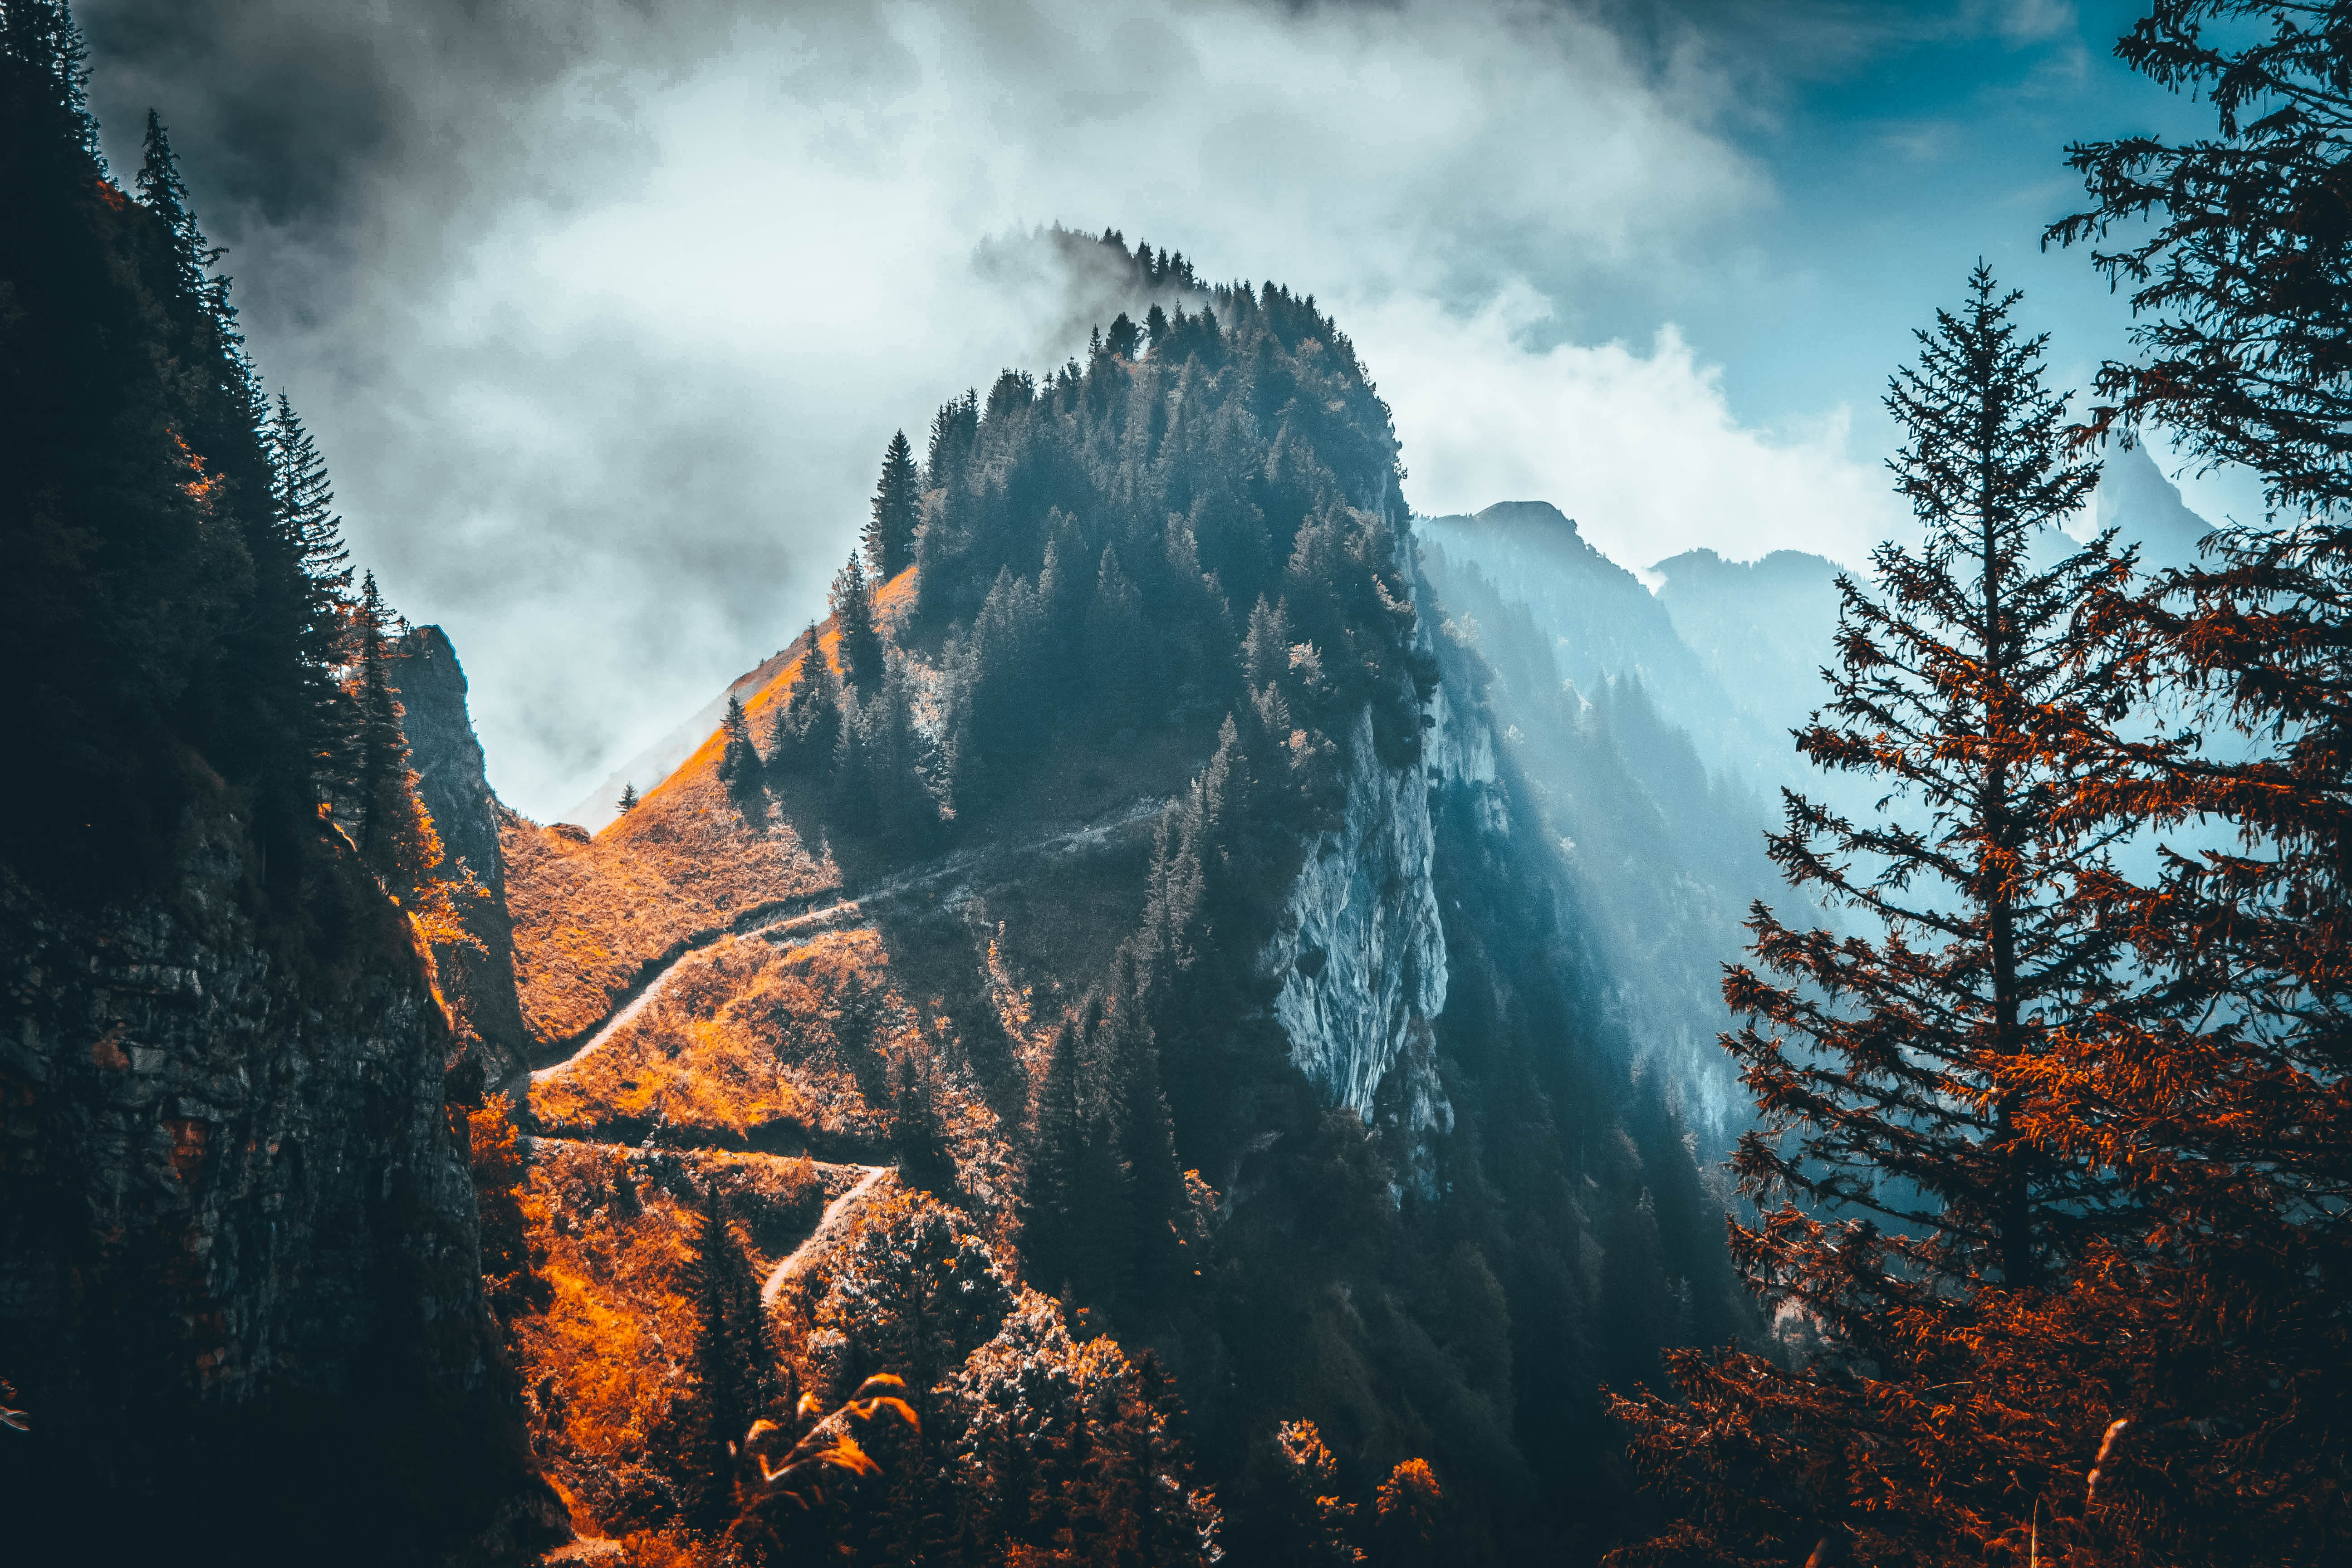 77739 free wallpaper 1080x2400 for phone, download images Landscape, Nature, Trees, Clouds, Rock, Mountain, Vertex, Top 1080x2400 for mobile